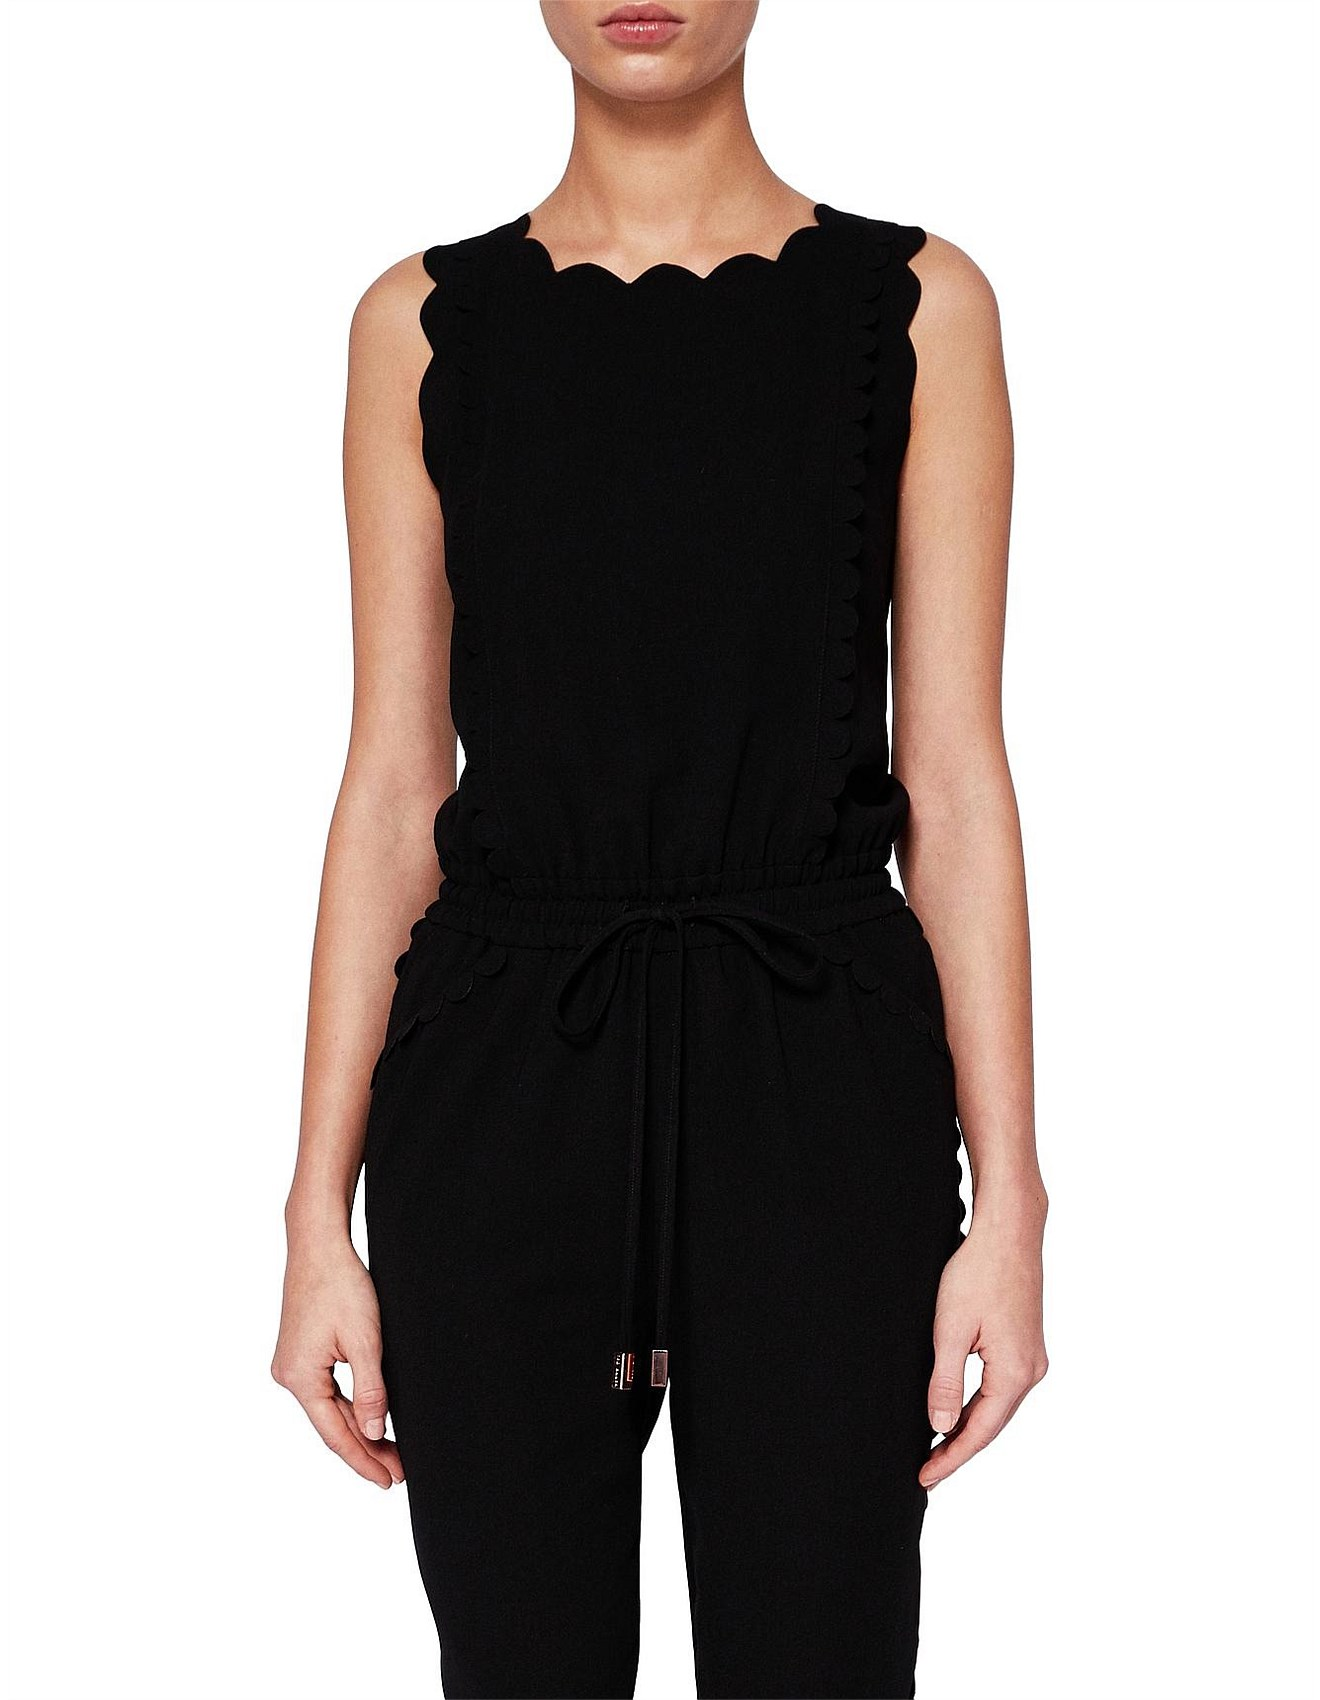 6c49c46a97d Sippy Scallop Detail Jumpsuit Special Offer. 1  2  3. Zoom. Ted Baker